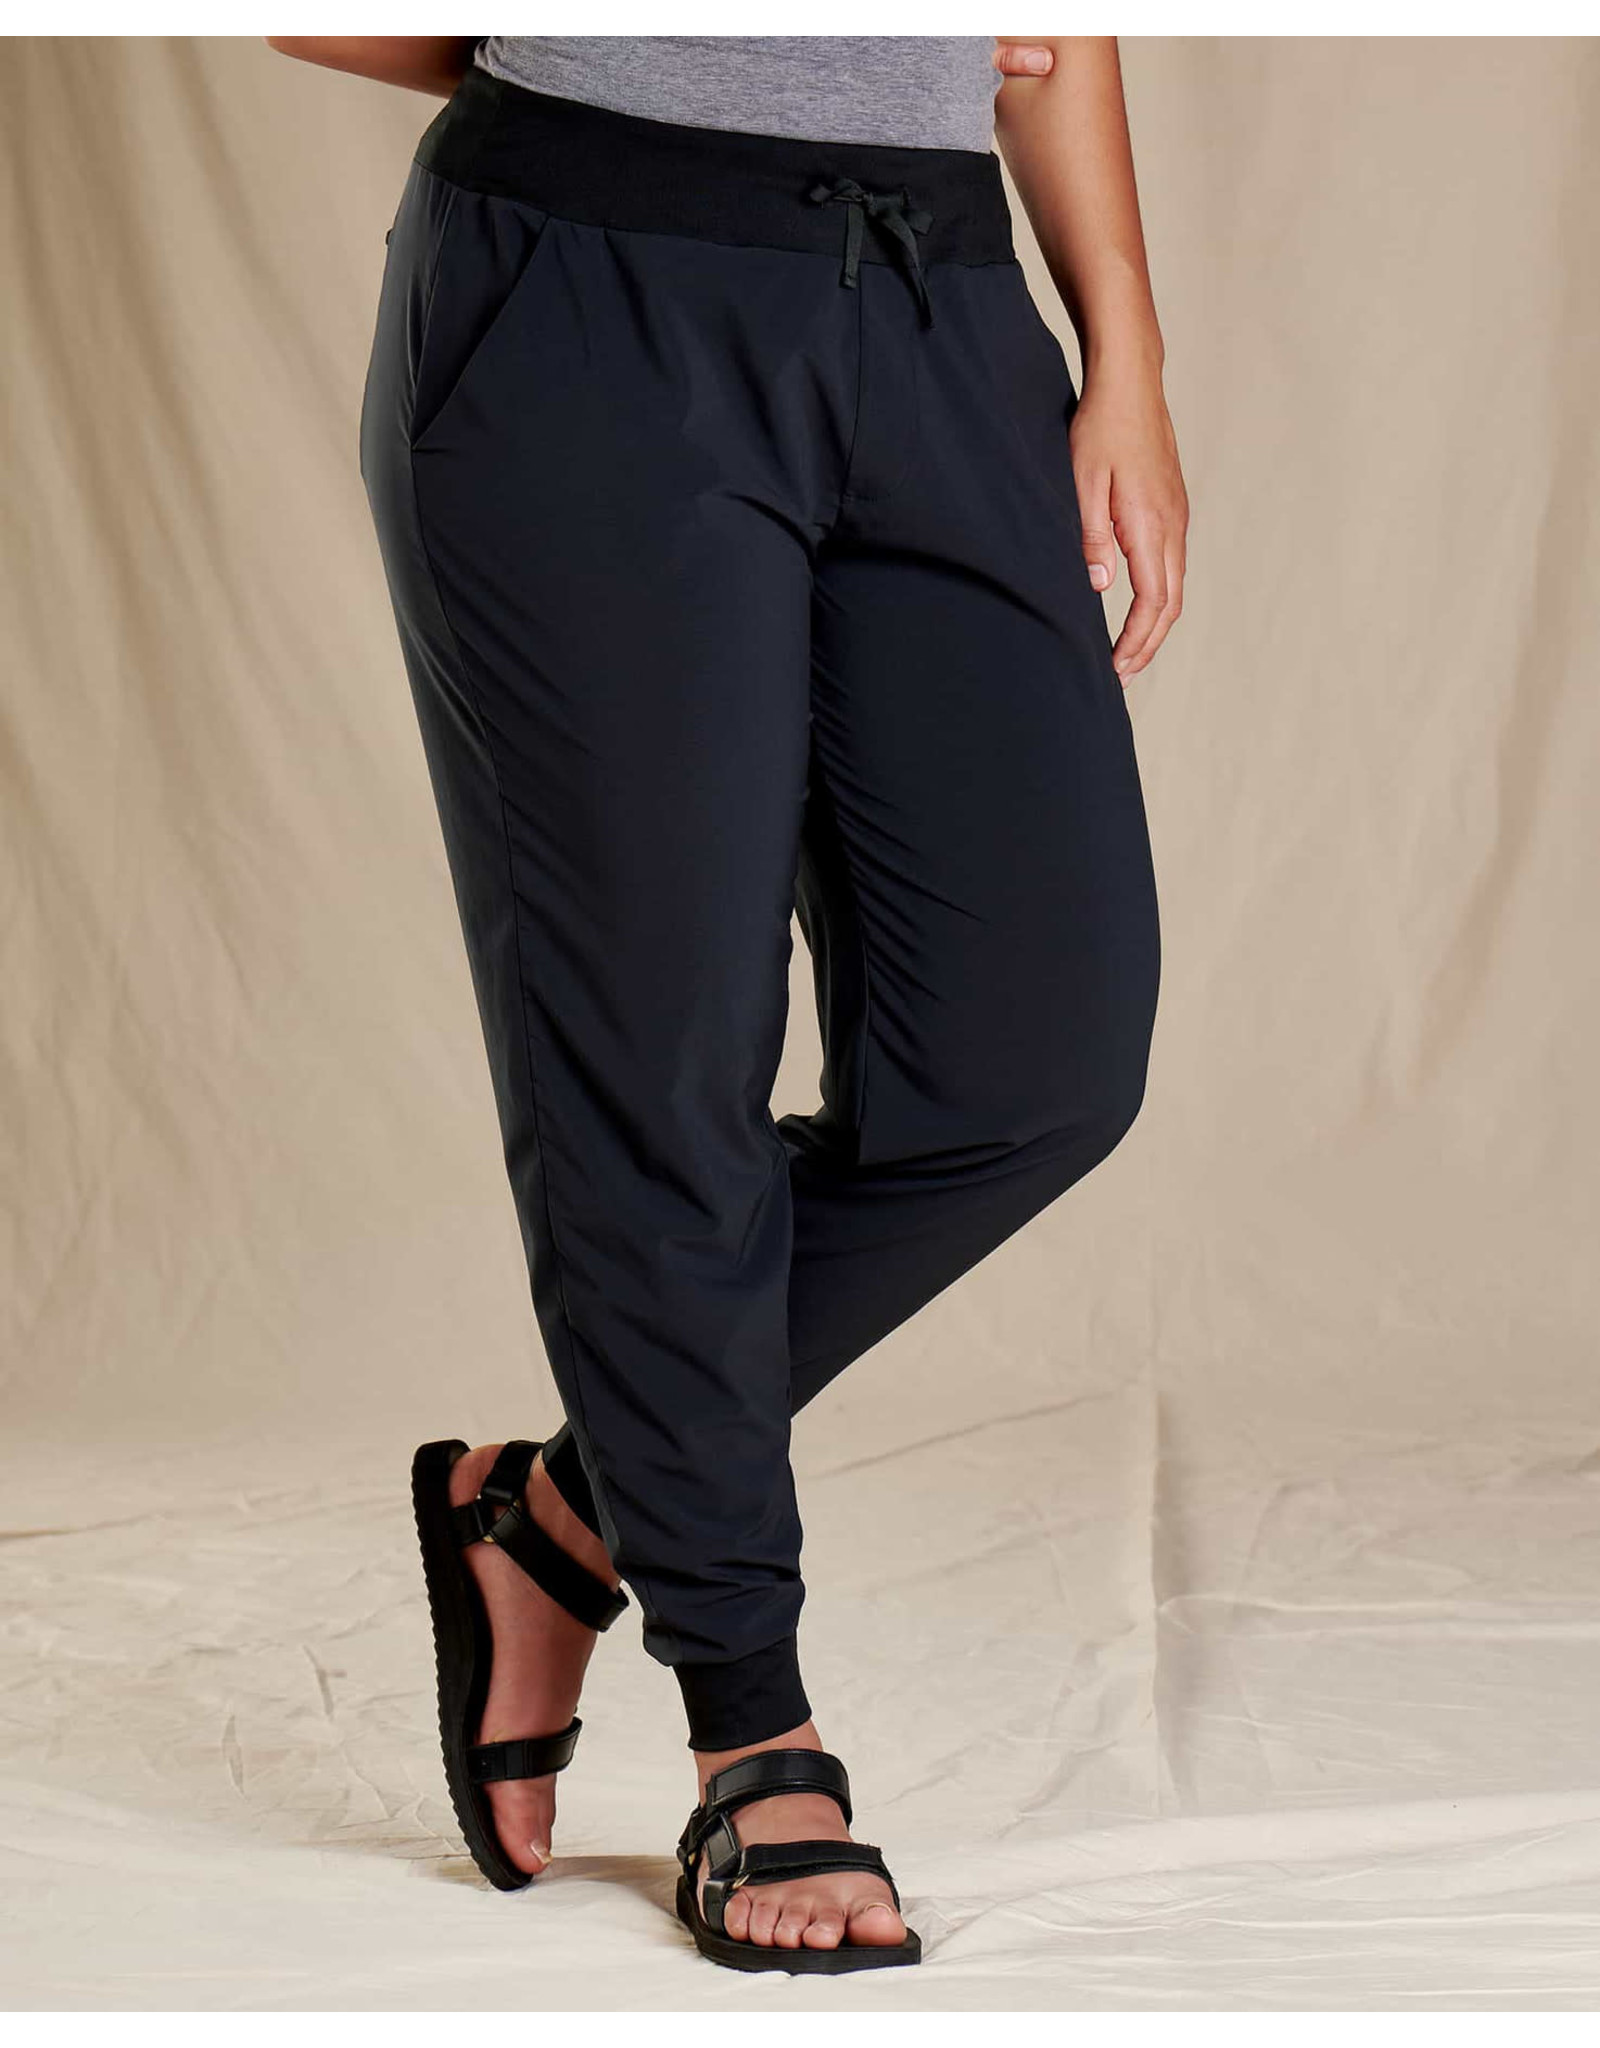 Toad & Co Women's Debug Sunkissed Jogger